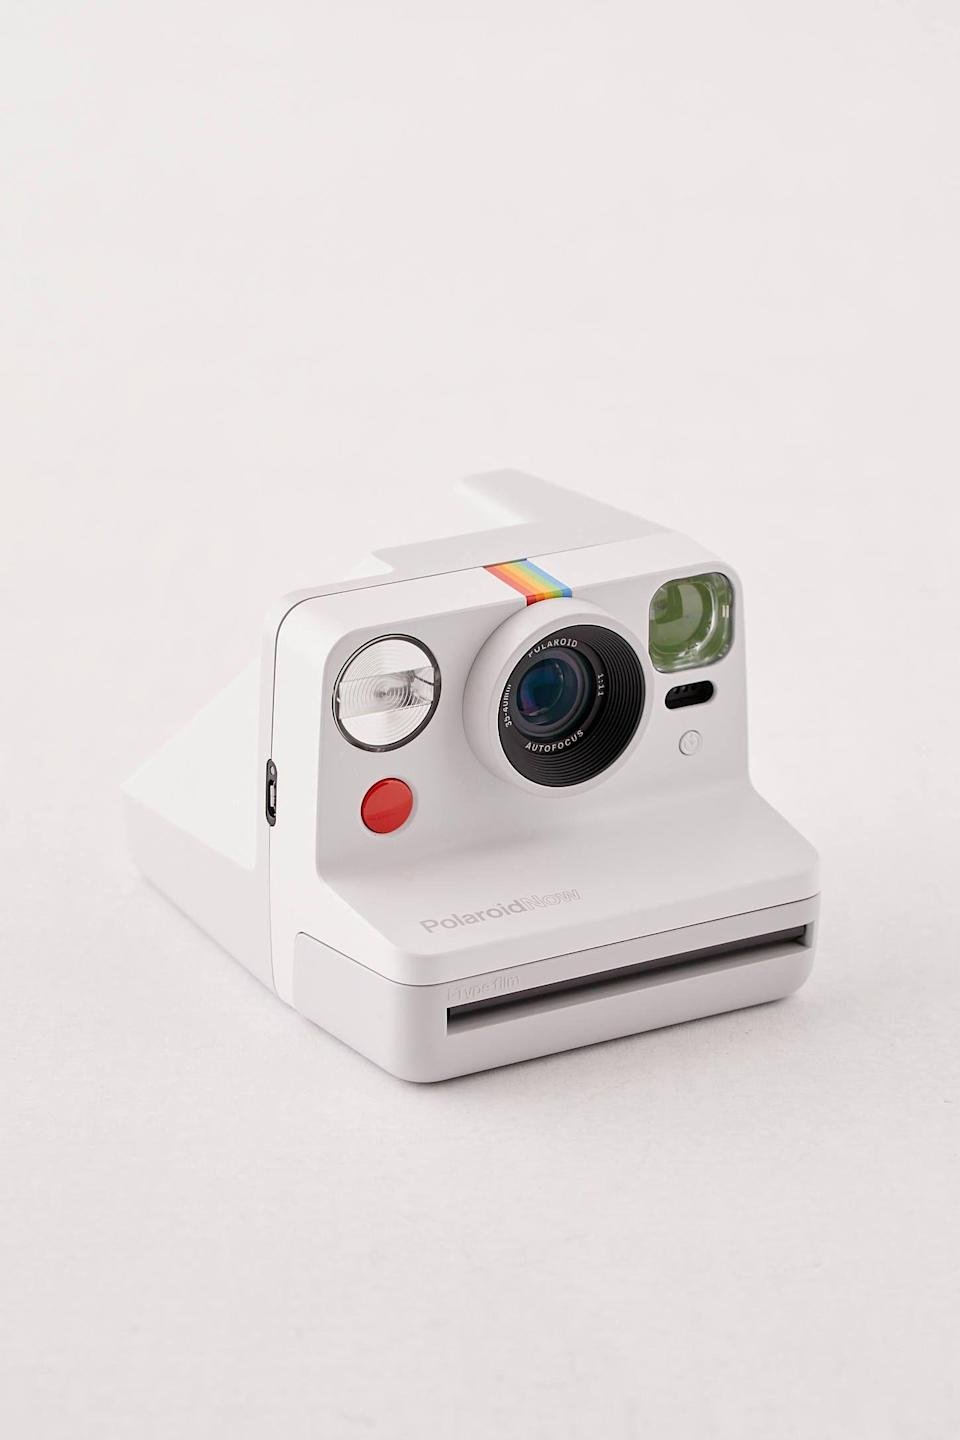 """<p><strong>Polaroid</strong></p><p>urbanoutfitters.com</p><p><strong>$100.00</strong></p><p><a href=""""https://go.redirectingat.com?id=74968X1596630&url=https%3A%2F%2Fwww.urbanoutfitters.com%2Fshop%2Fpolaroid-now-instant-camera&sref=https%3A%2F%2Fwww.cosmopolitan.com%2Fstyle-beauty%2Ffashion%2Fg34026042%2Fsagittarius-gift-guide%2F"""" rel=""""nofollow noopener"""" target=""""_blank"""" data-ylk=""""slk:Shop Now"""" class=""""link rapid-noclick-resp"""">Shop Now</a></p><p>Your Sag friend is always creating memories, and a camera will help them capture them.</p>"""